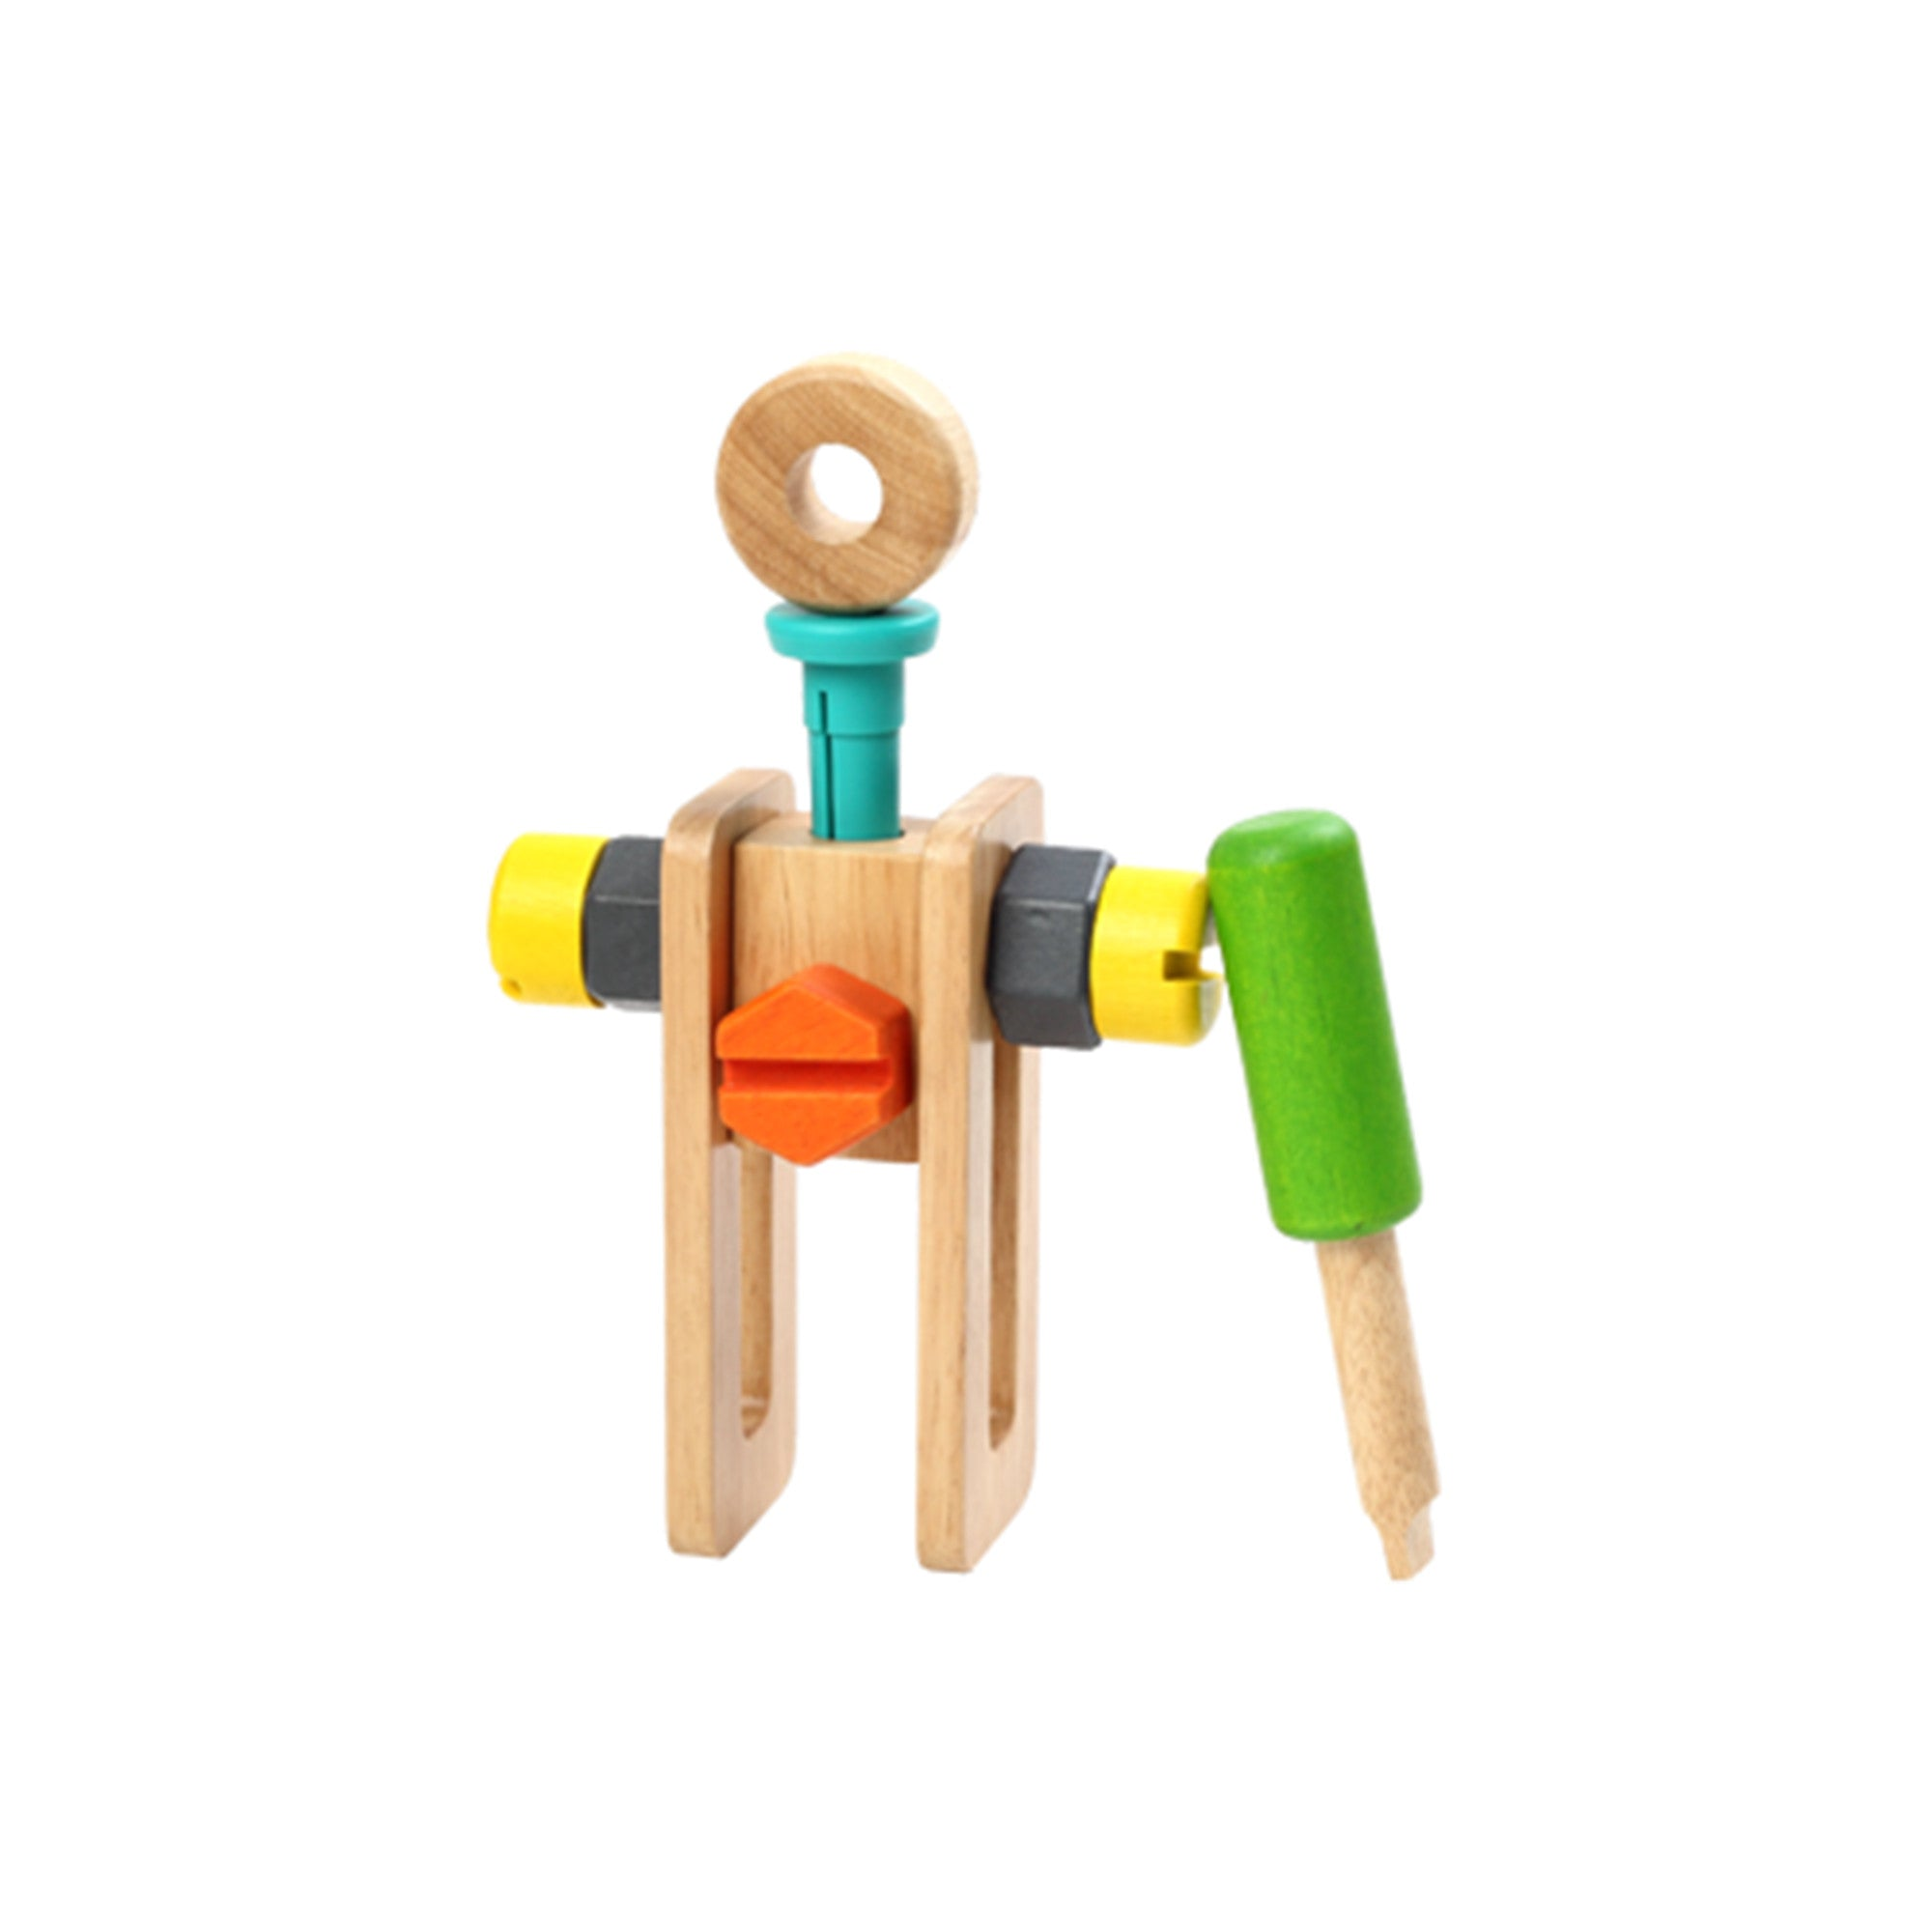 Wooden Toy Tool Set Tool Kit   - Voila - Little Earth Nest - 4